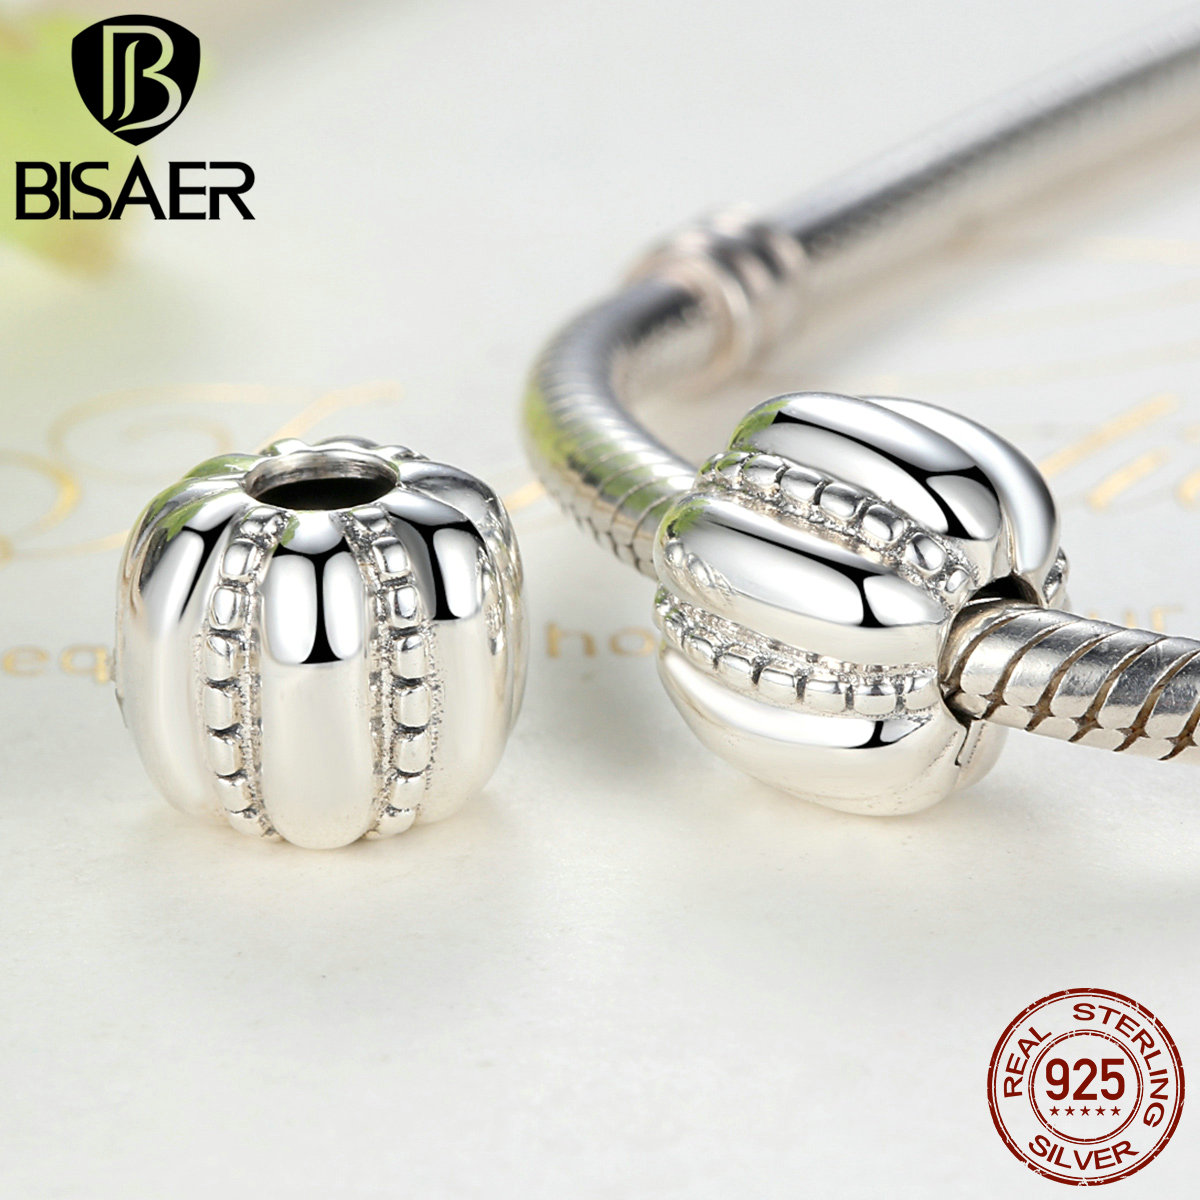 Authentic 925 Sterling Silver Crazy Clip Stopper Beads Charms Fit PAN Charm Bracelet DIY Fine Sterling Silver Jewelry GYC010